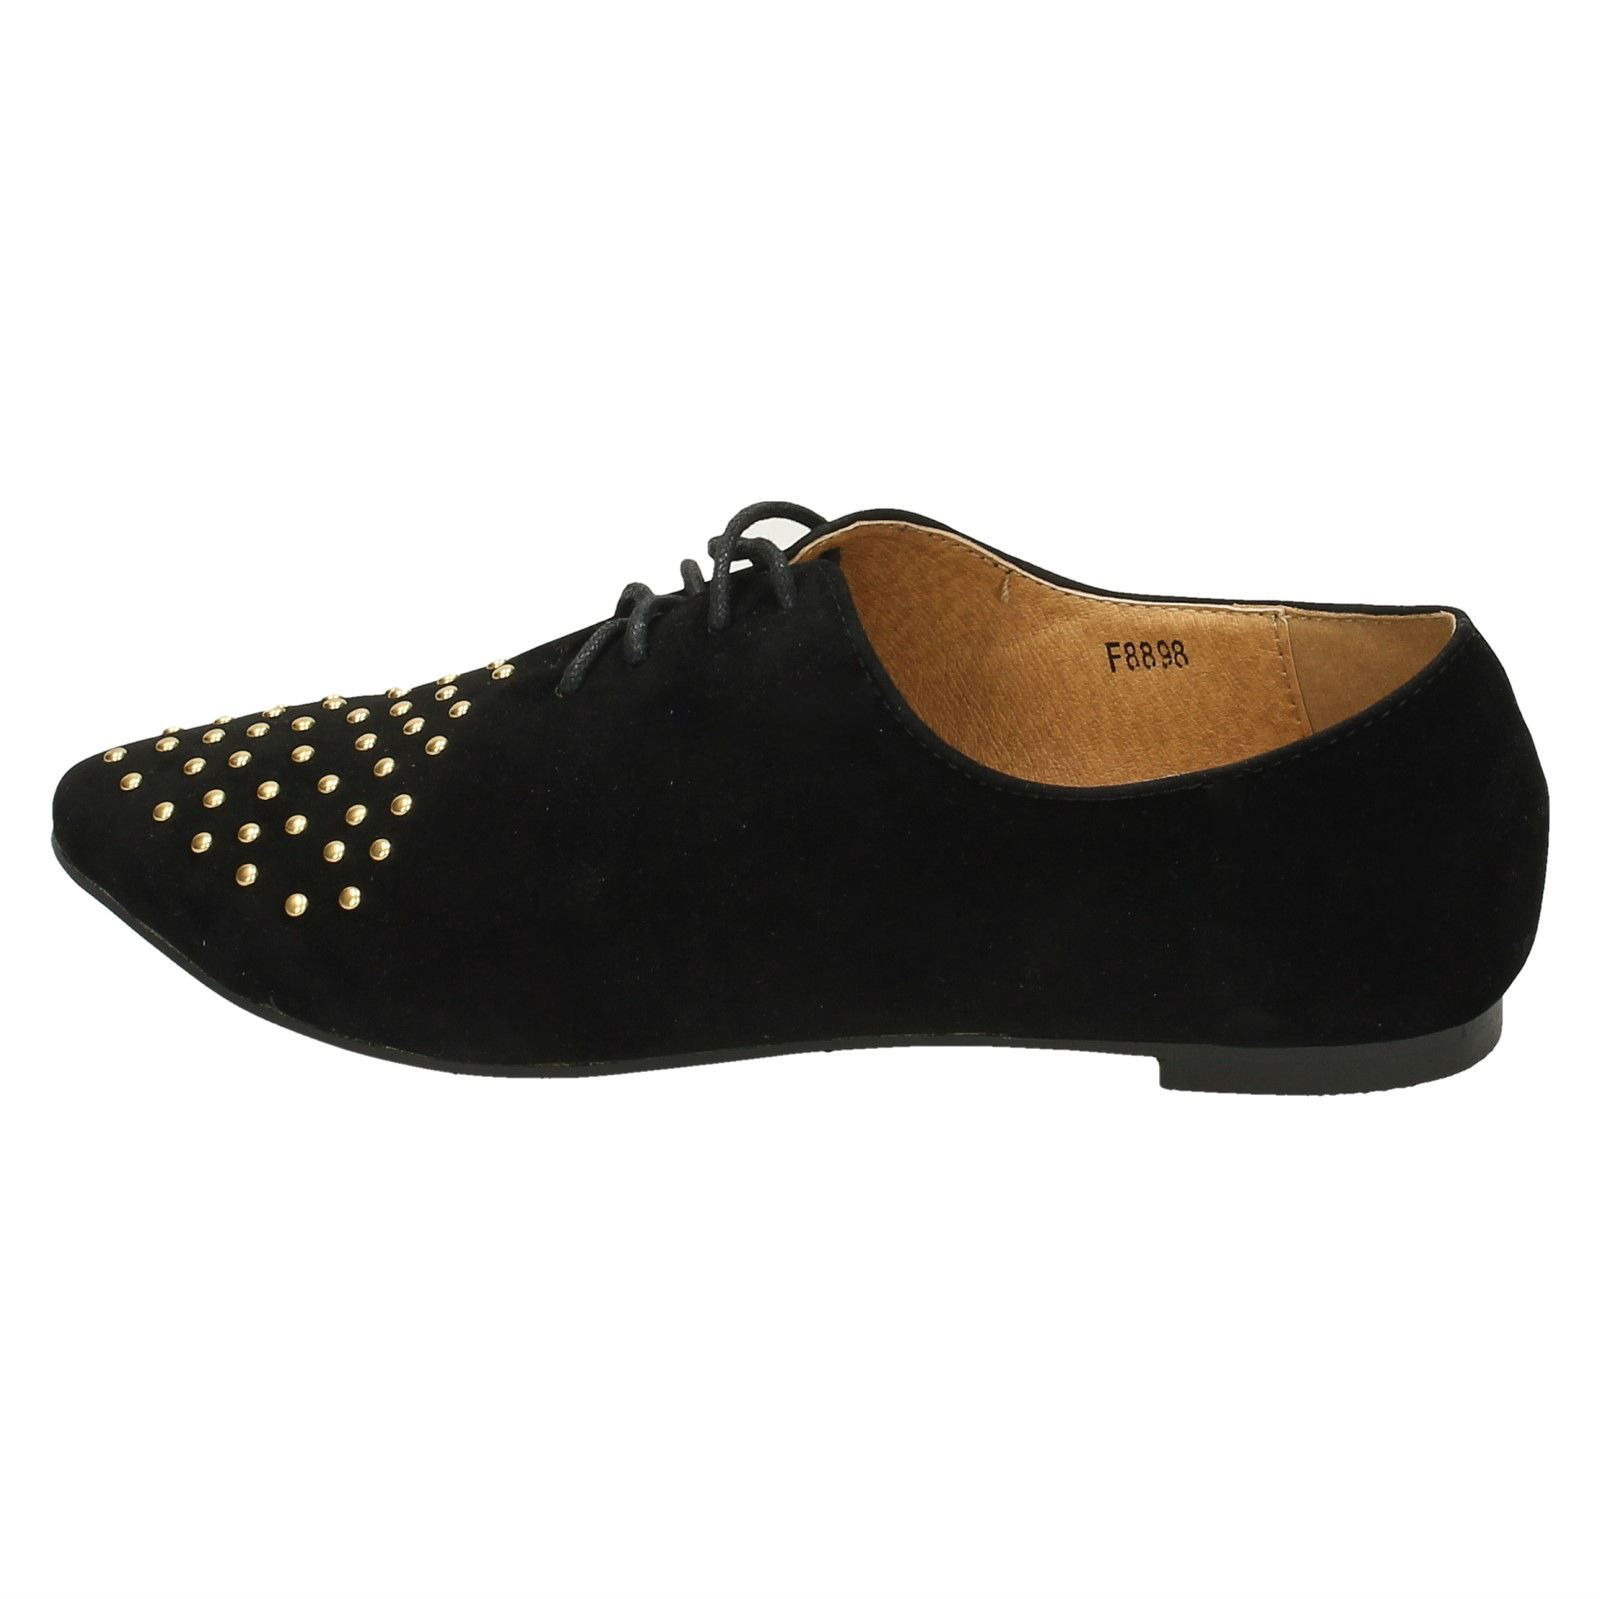 Spot-On-Ladies-Lace-Up-Shoes-with-Pointed-Toe thumbnail 3